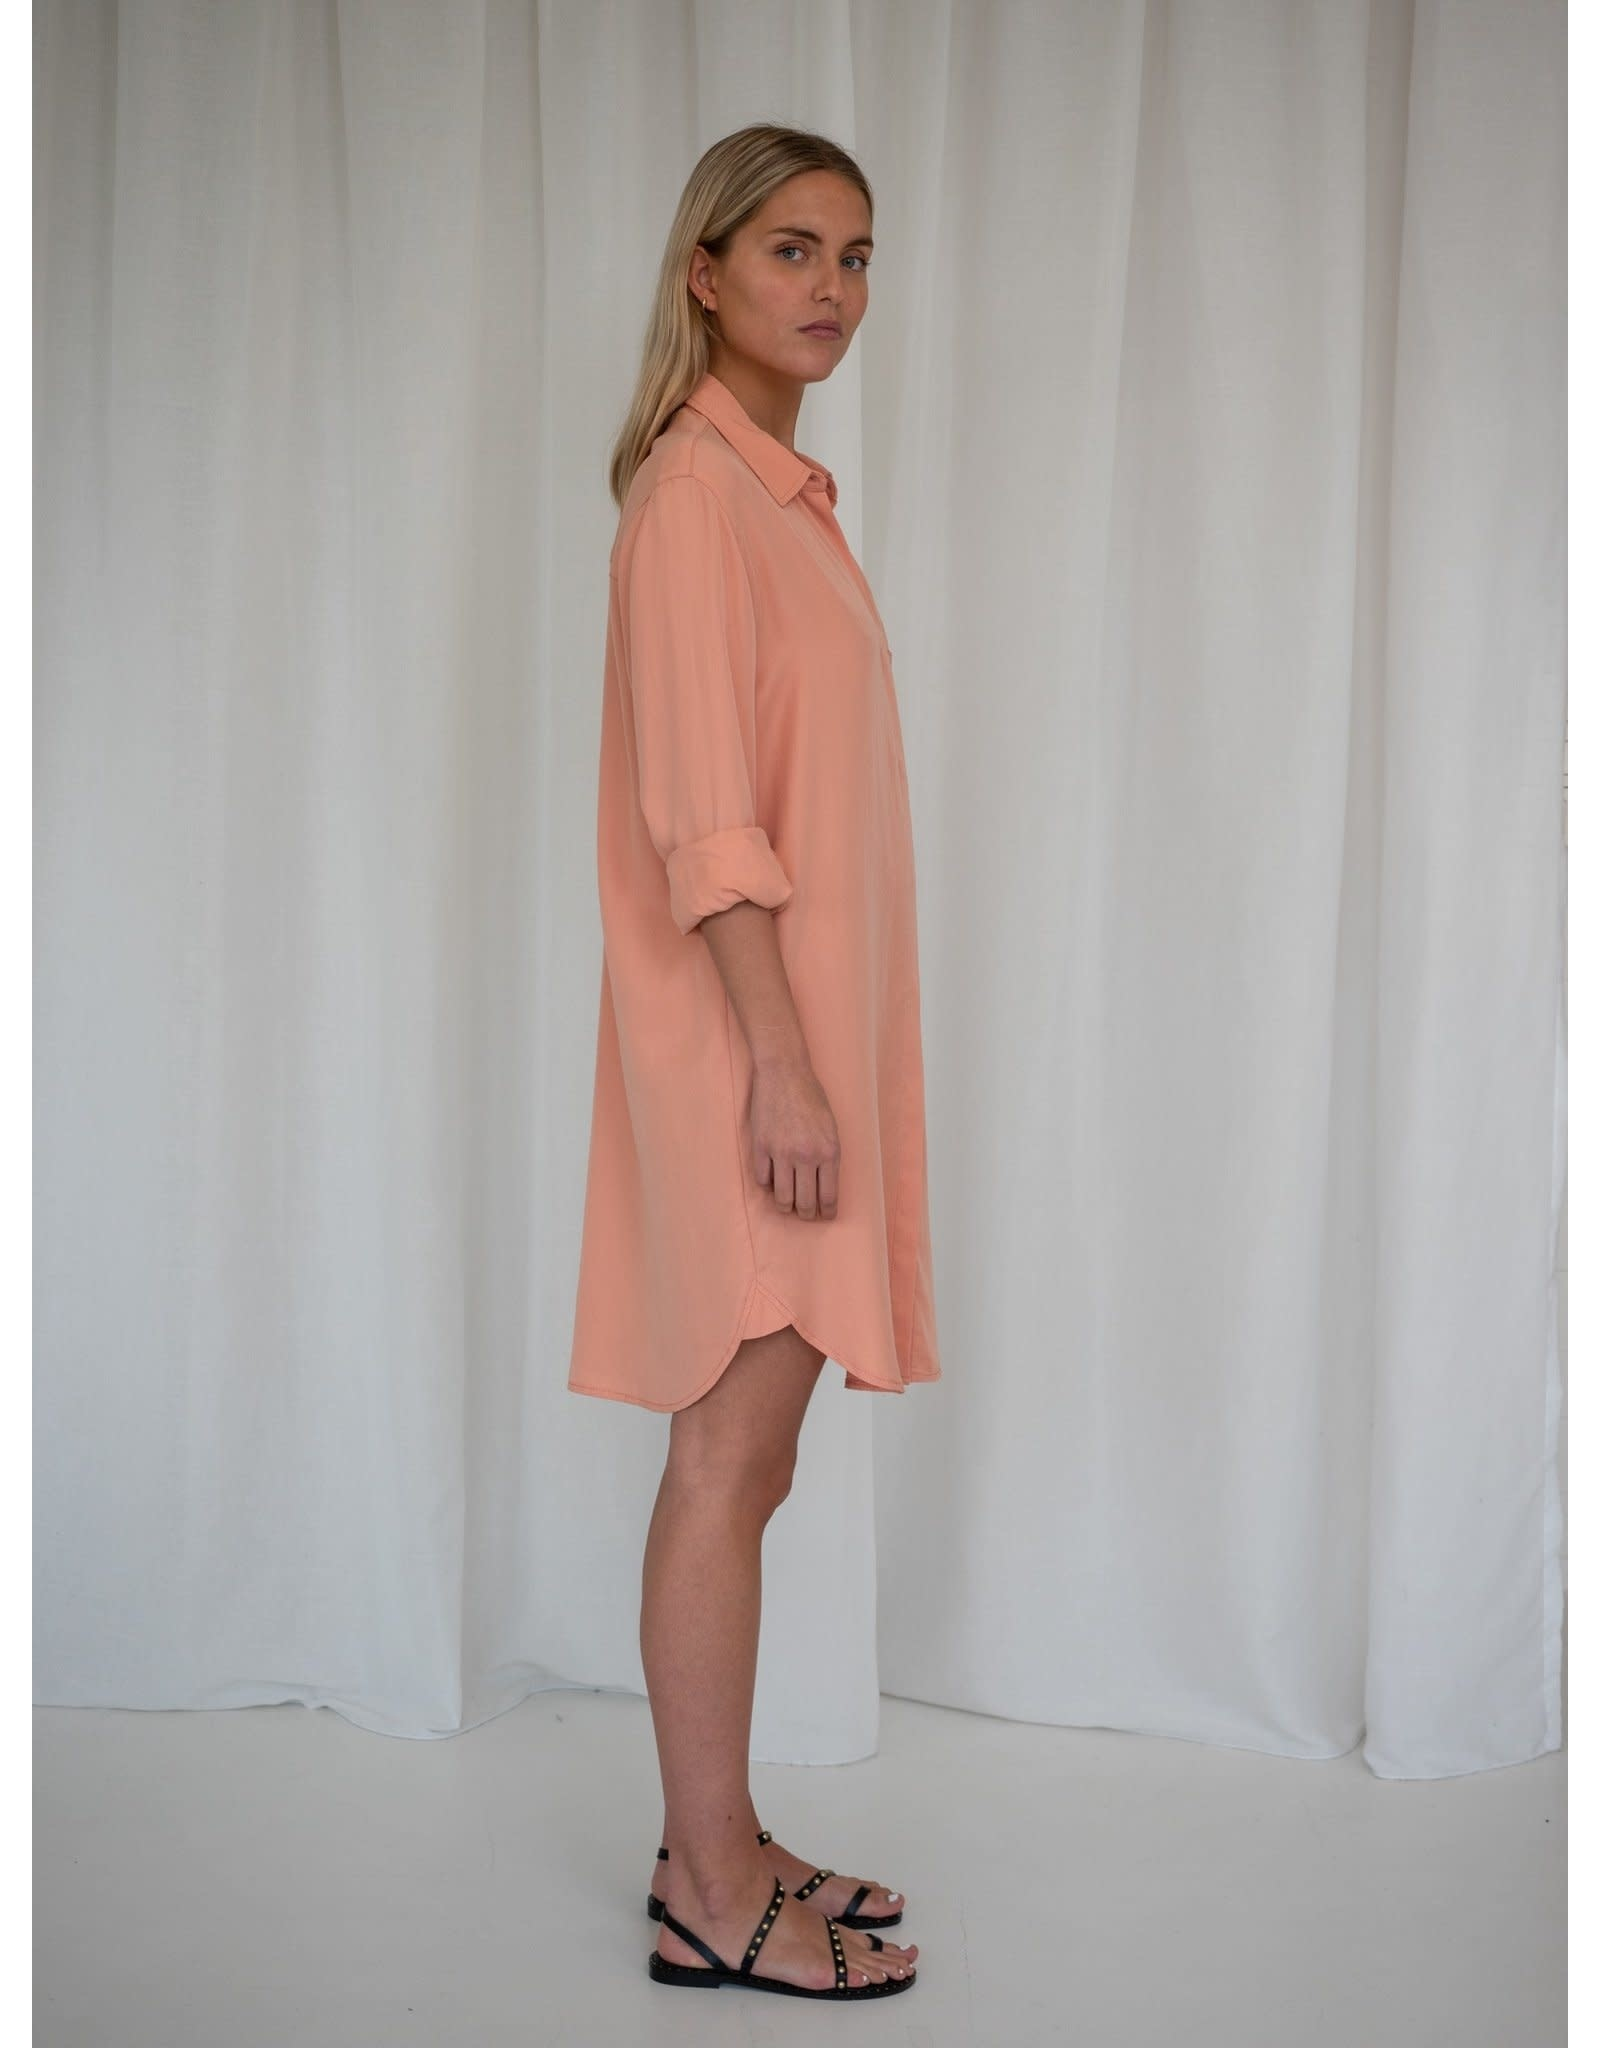 LIV THE LABEL SHIRT DRESS MONTEVIDEO